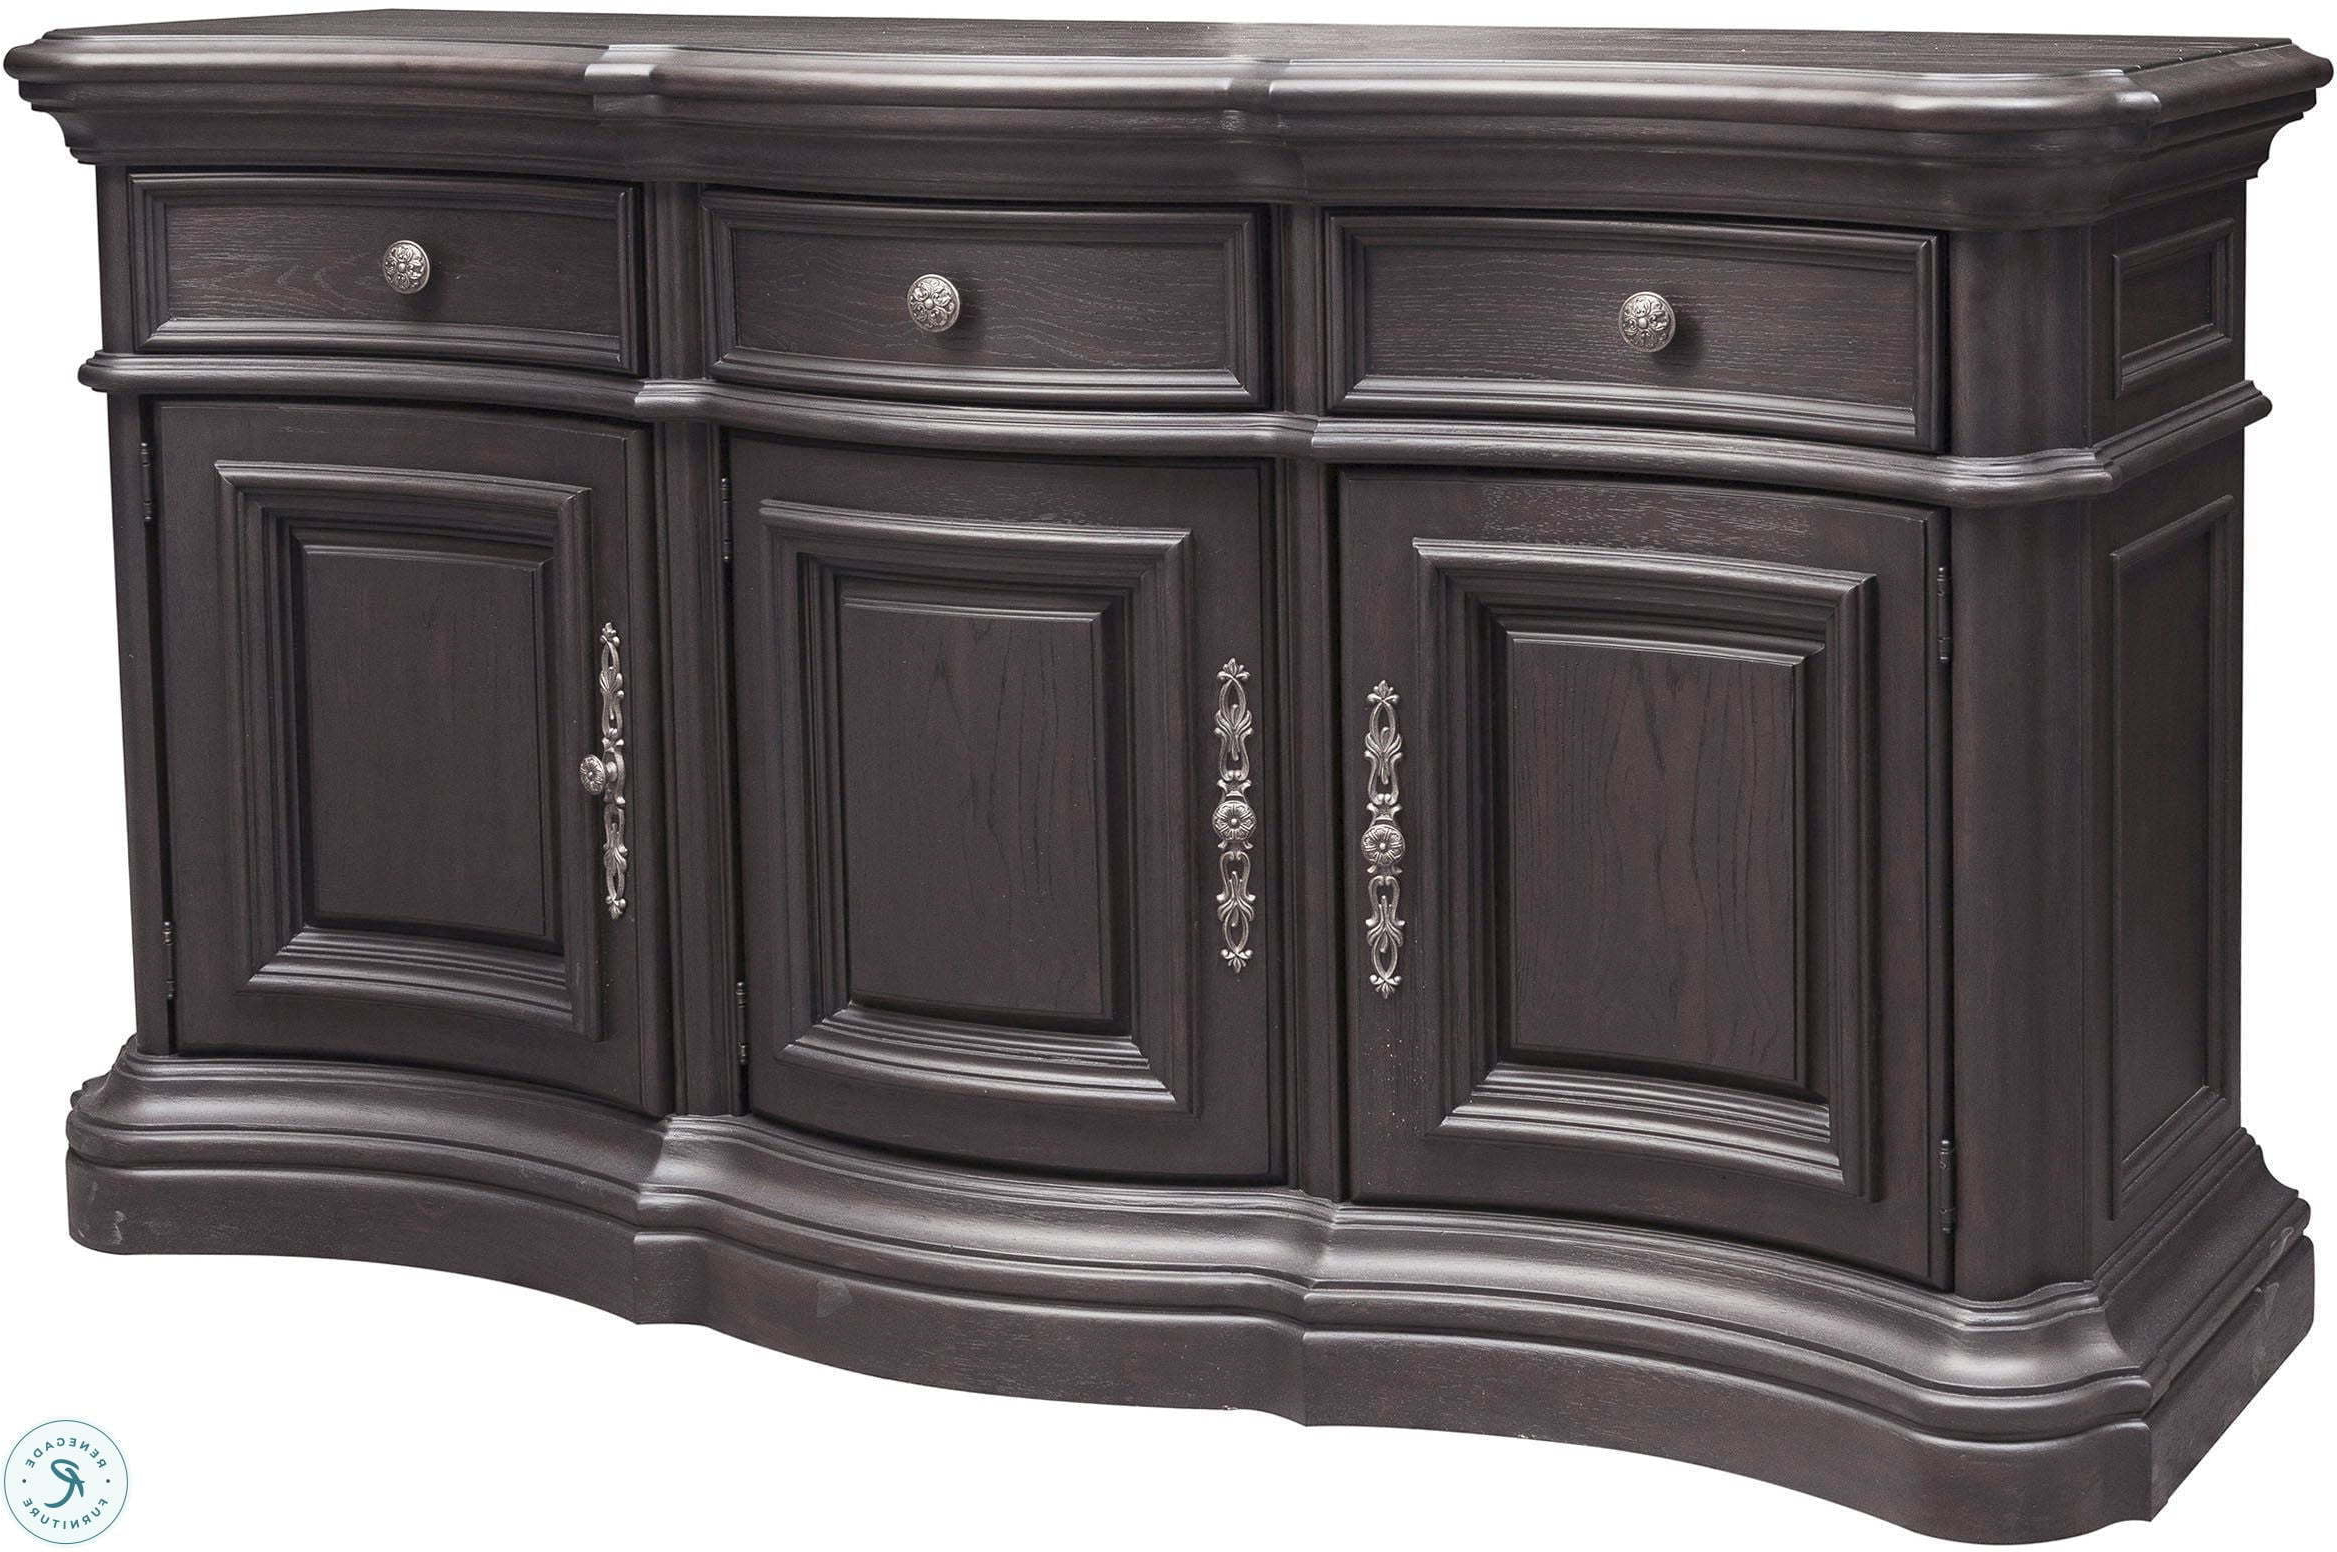 Palisade Distressed Dark Brown Sideboard From Pulaski Pertaining To Most Up To Date Palisade Sideboards (View 4 of 20)